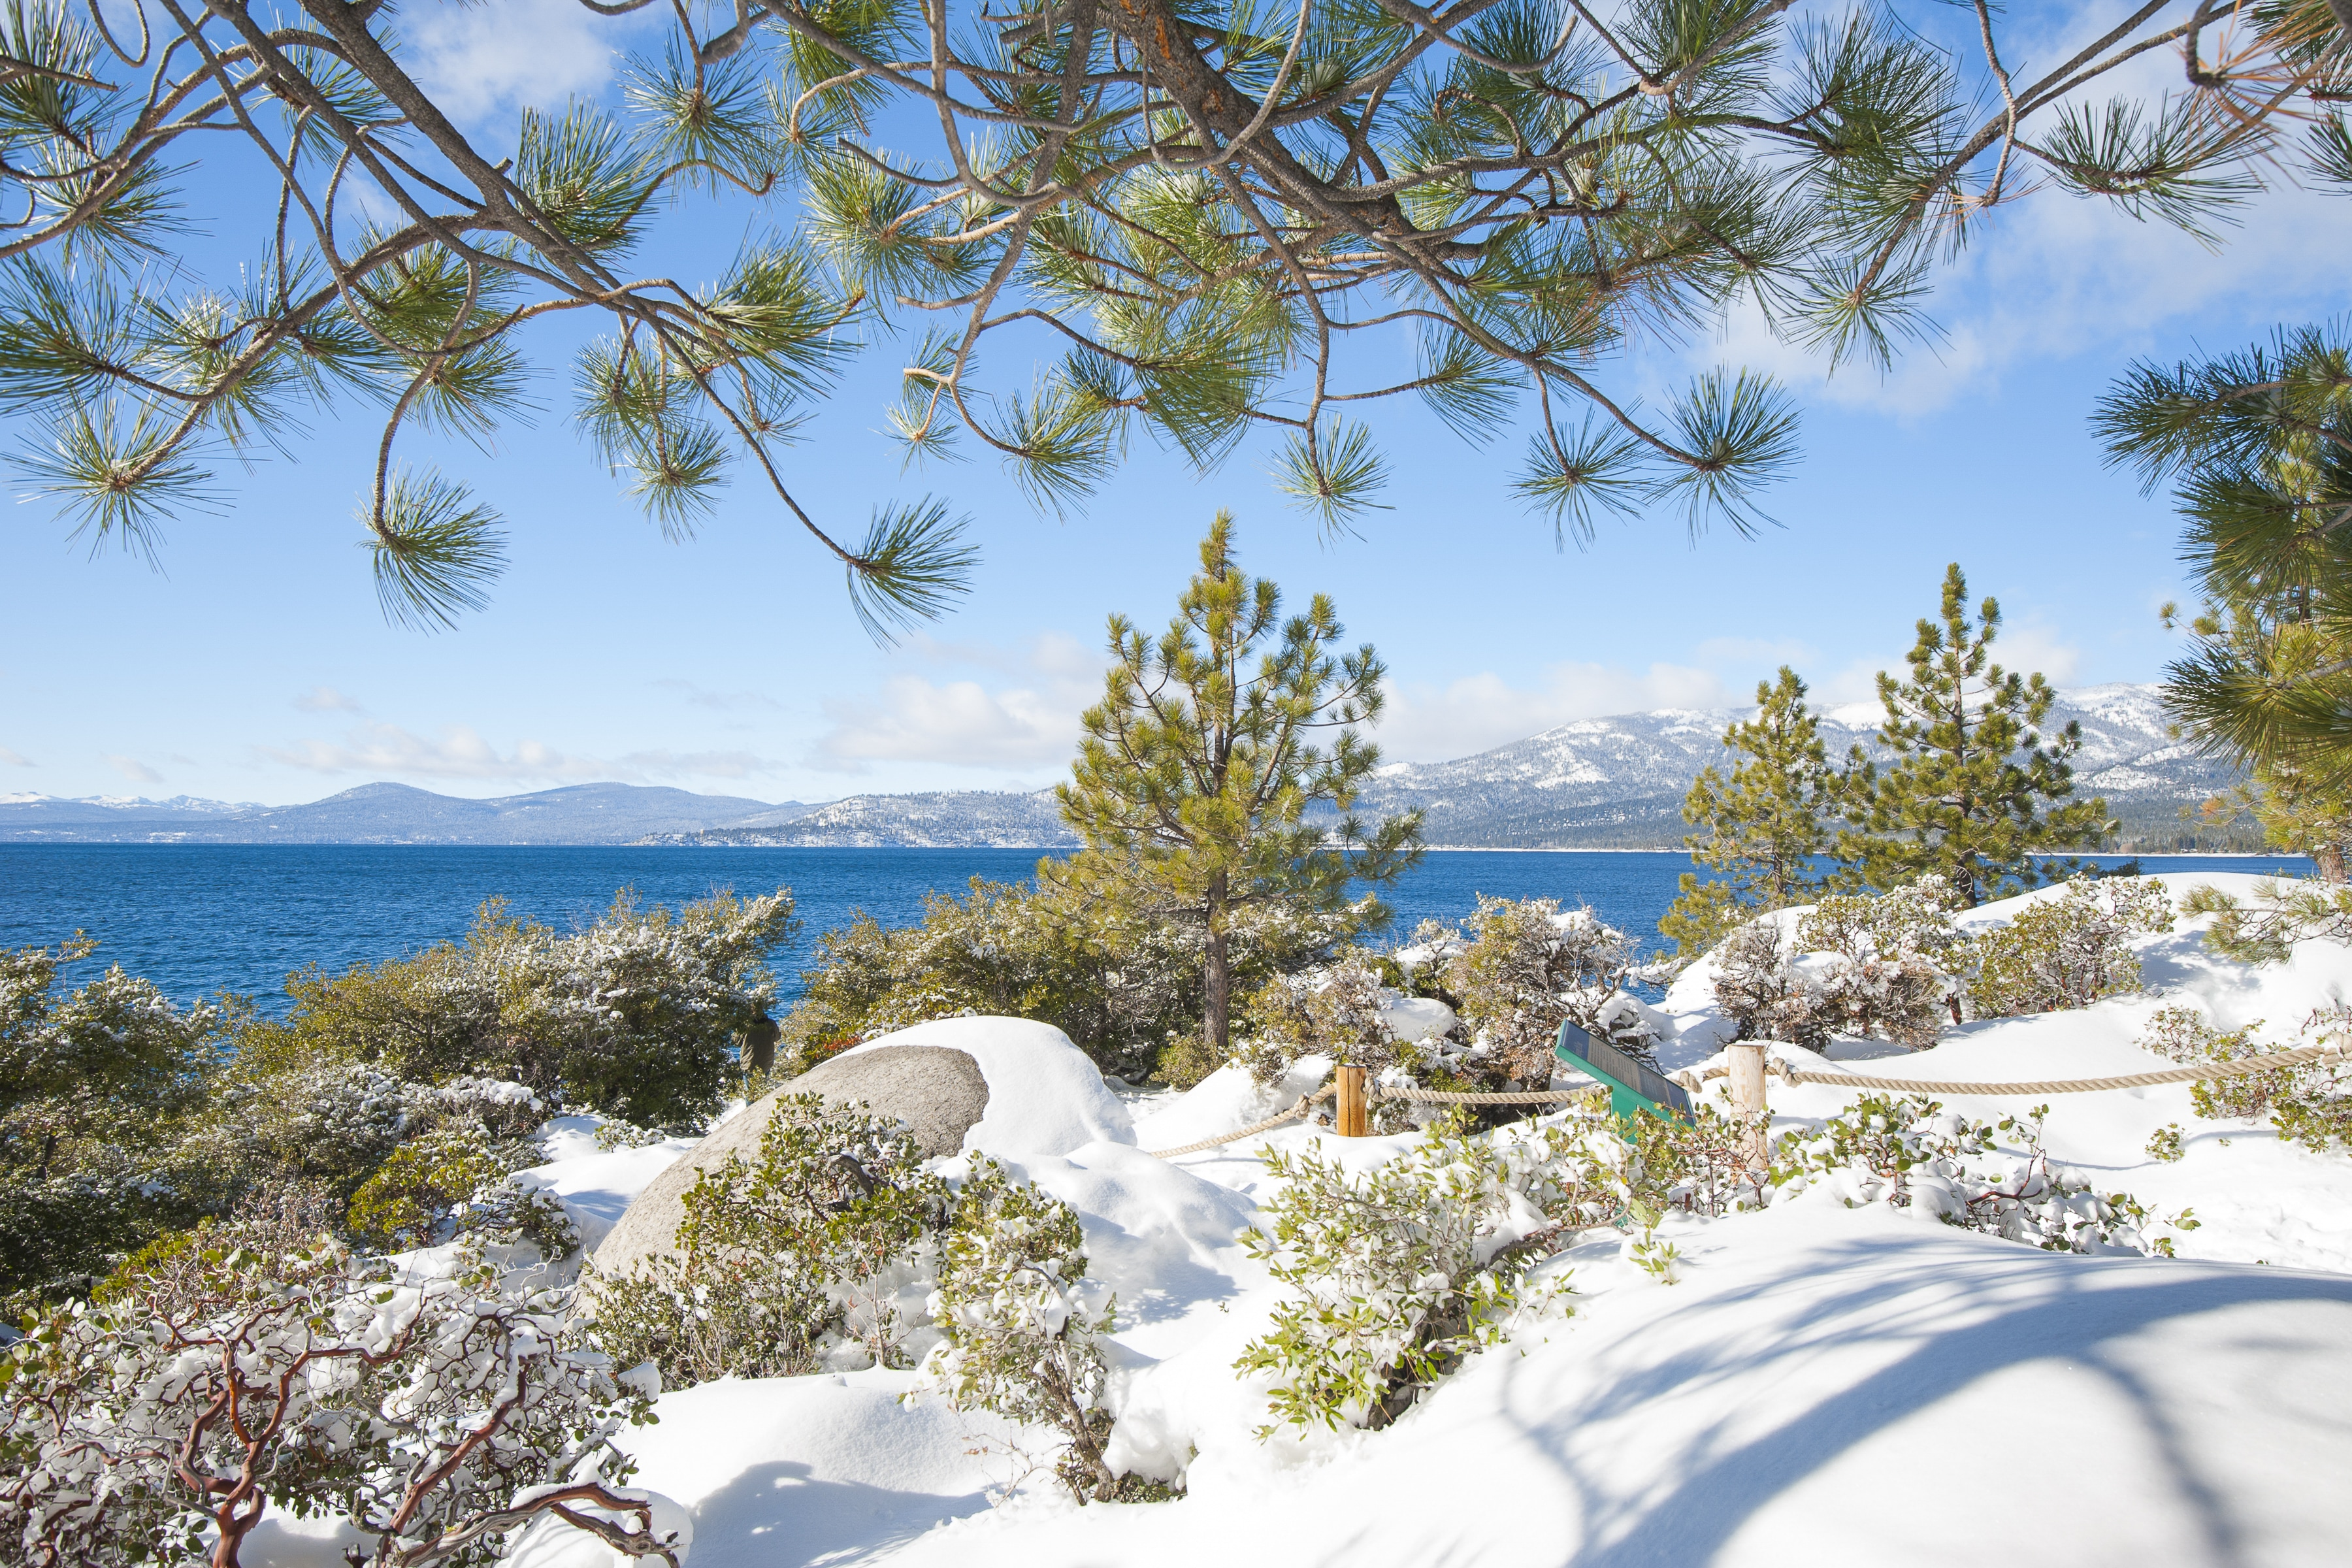 Make a short drive to take in the beauty of Lake Tahoe.